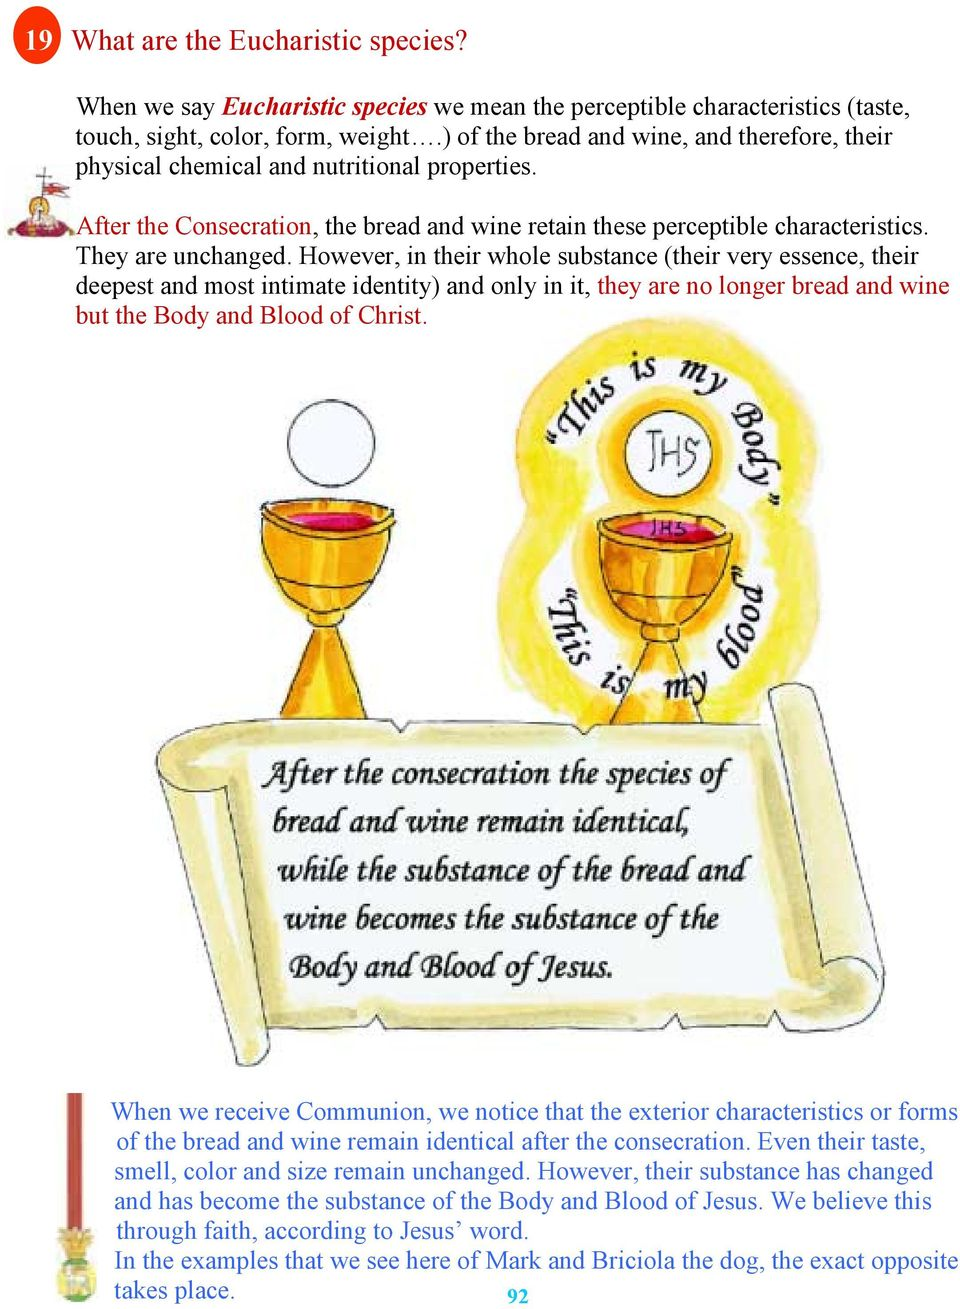 However, in their whole substance (their very essence, their deepest and most intimate identity) and only in it, they are no longer bread and wine but the Body and Blood of Christ.